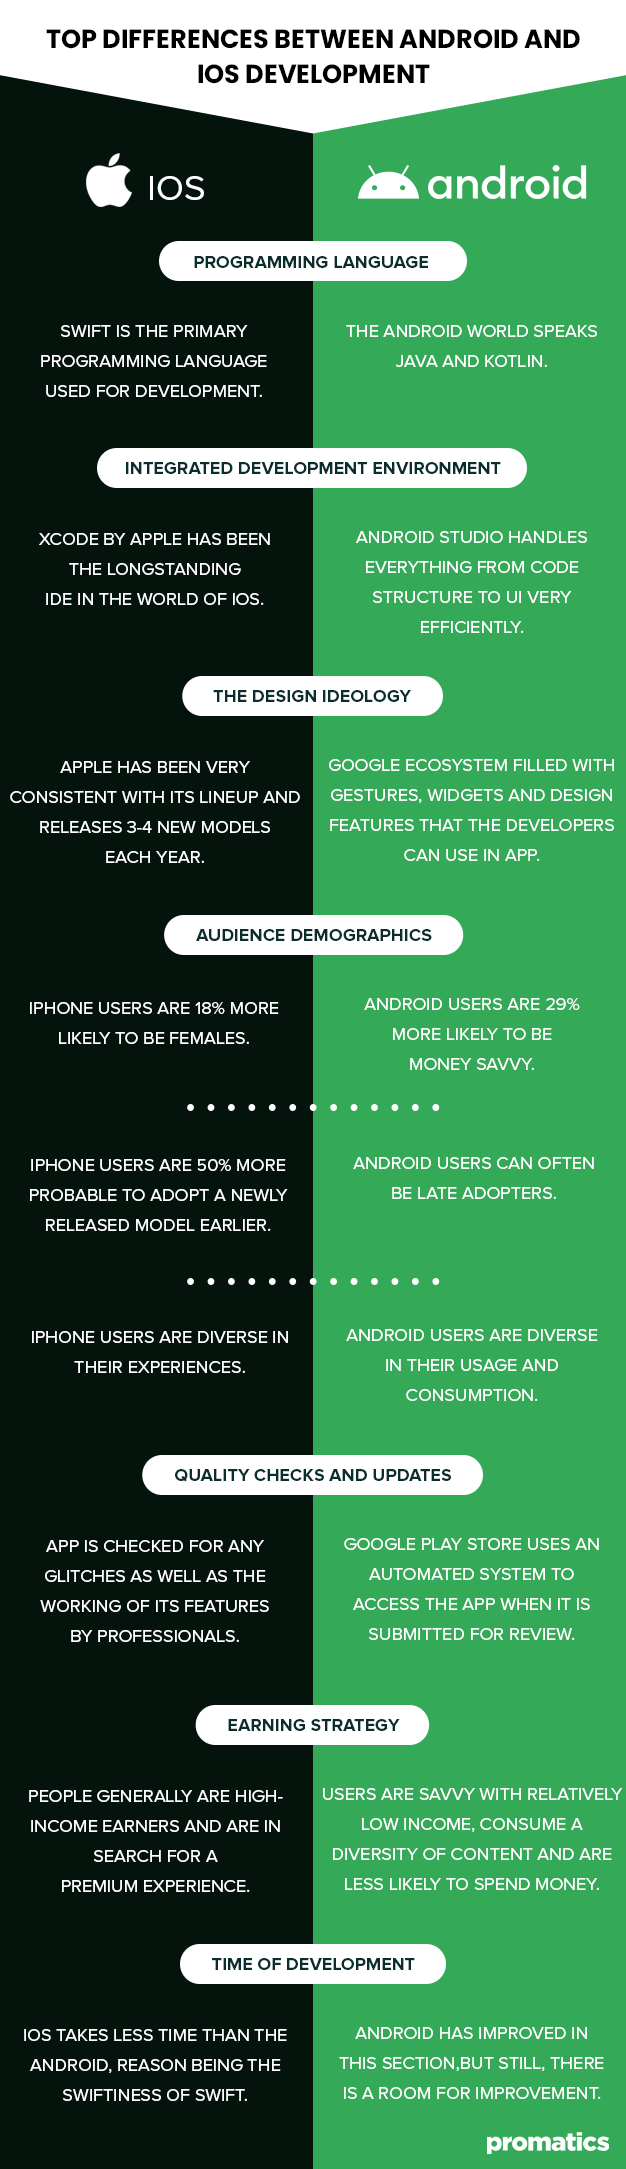 Top Differences between Android and iOS Development